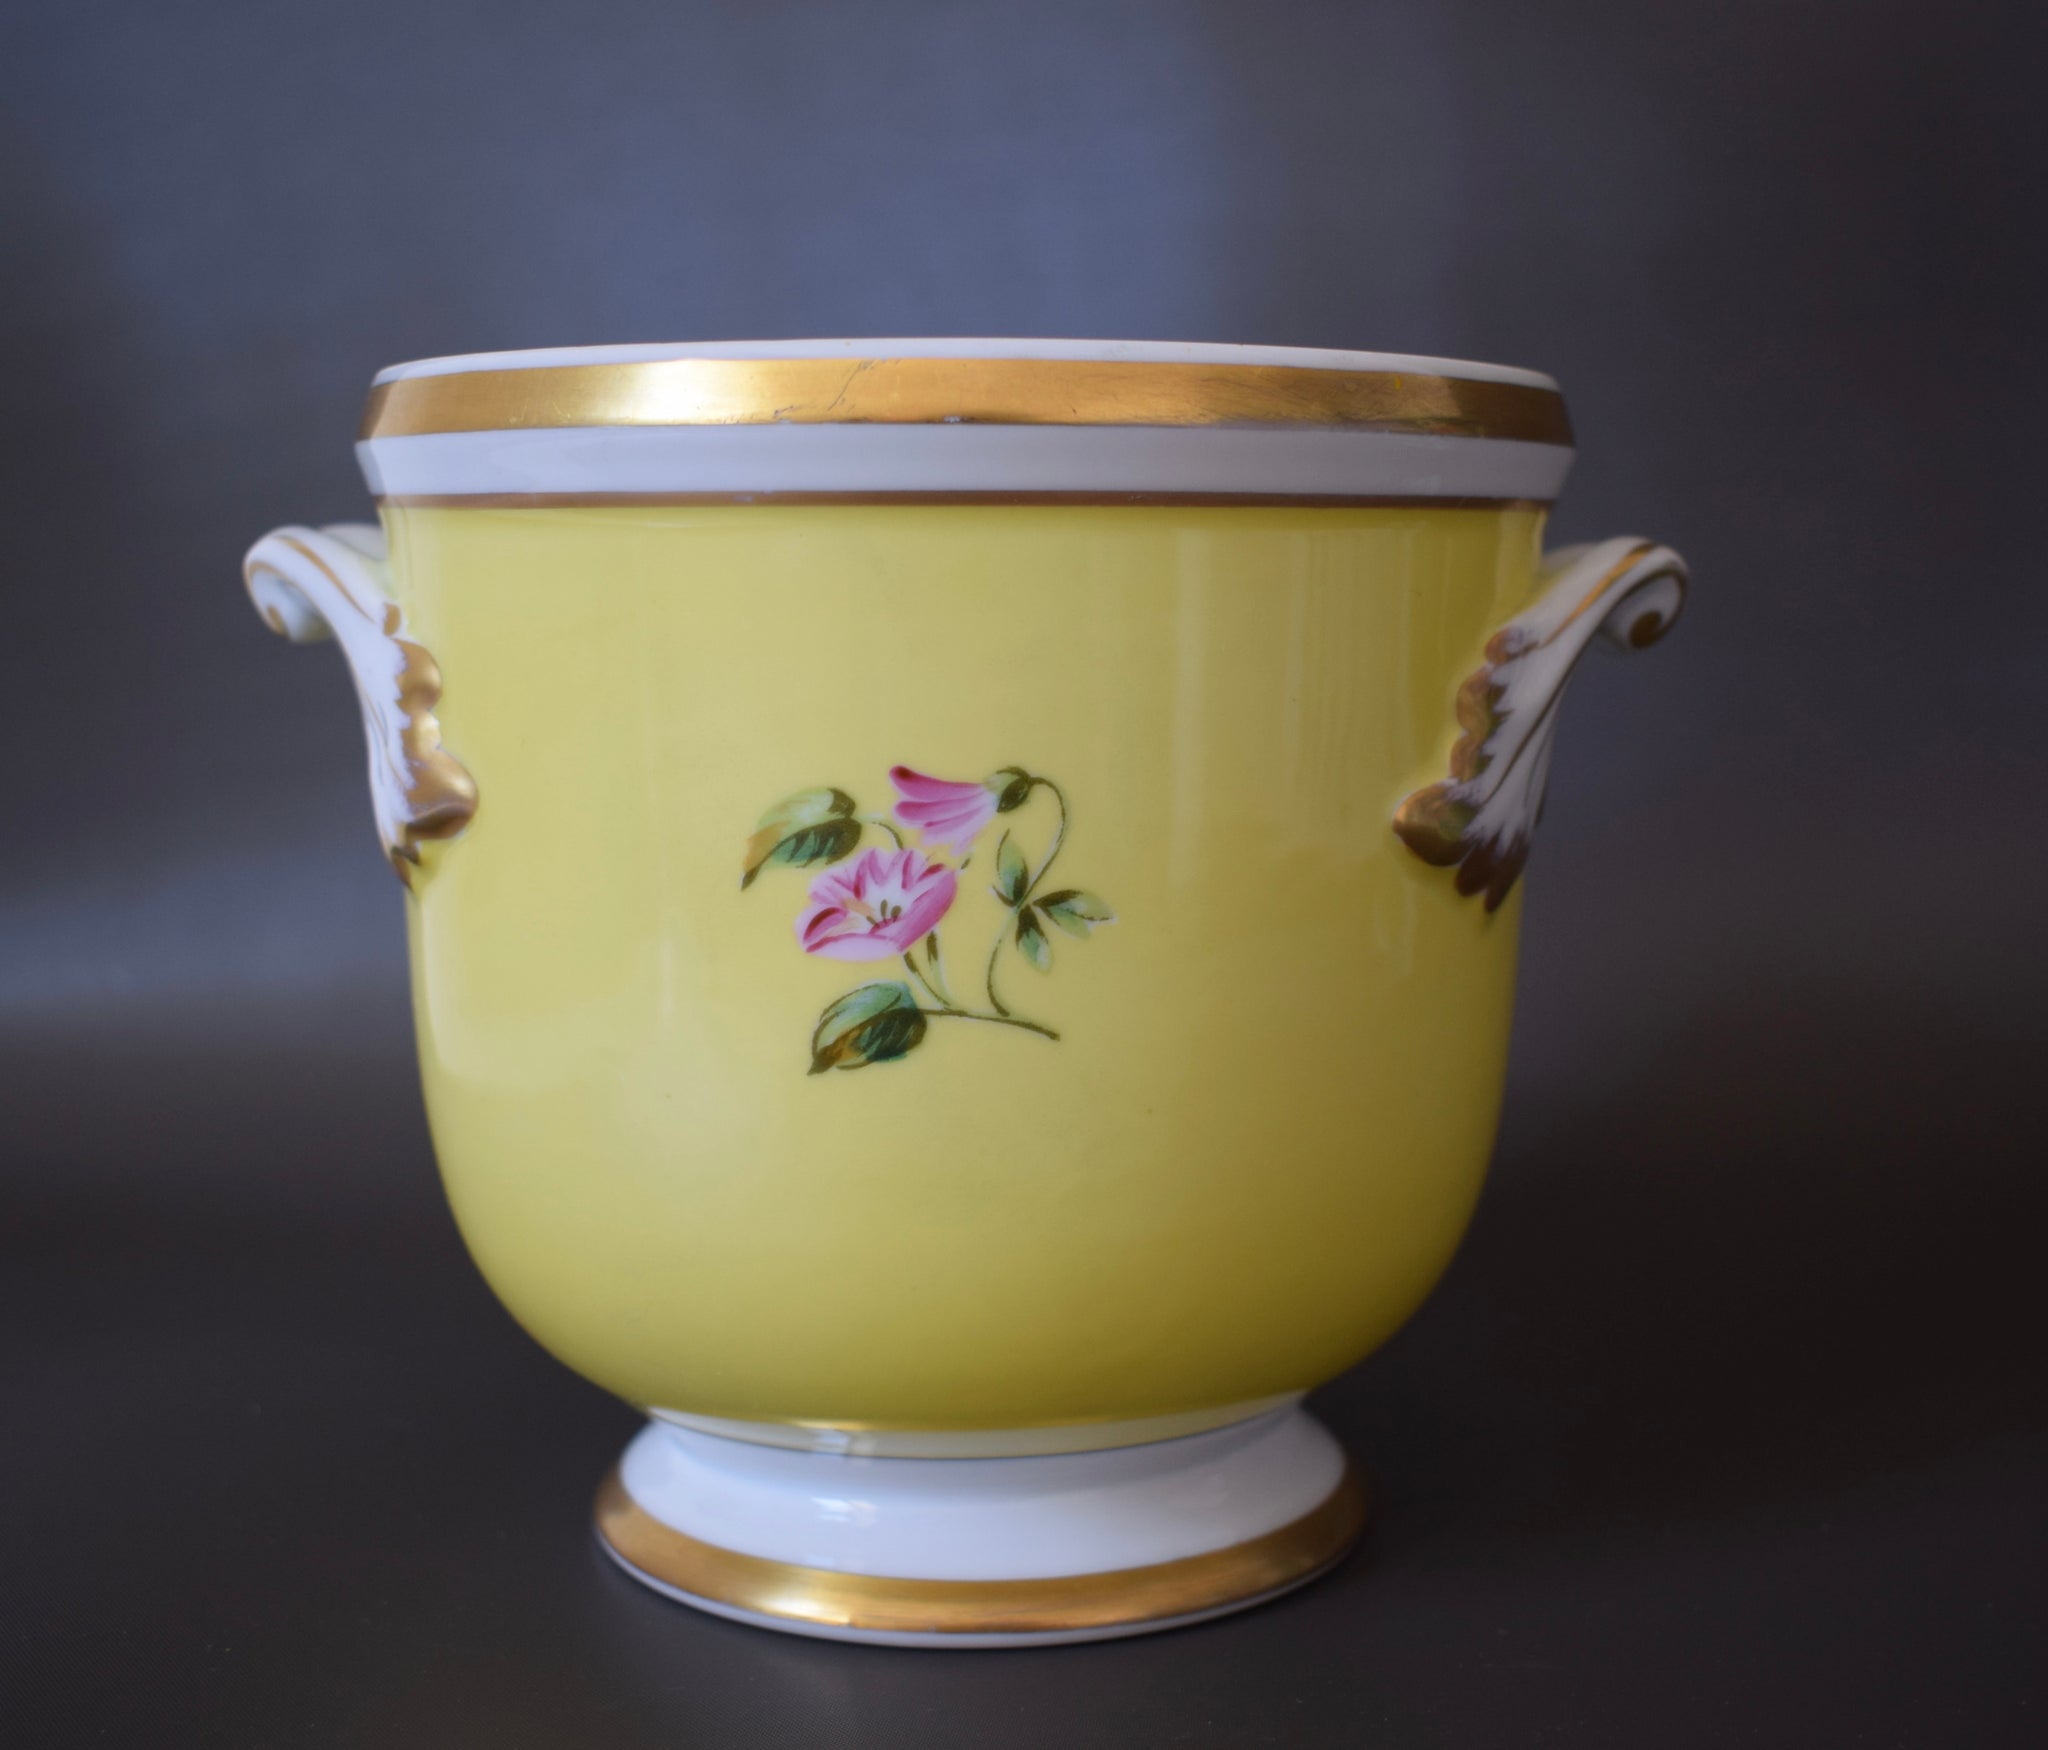 Vintage Yellow Old Paris Style Porcelain Jardiniere Cache Pot with Bunch of Flowers by Vista Alegre Portugal